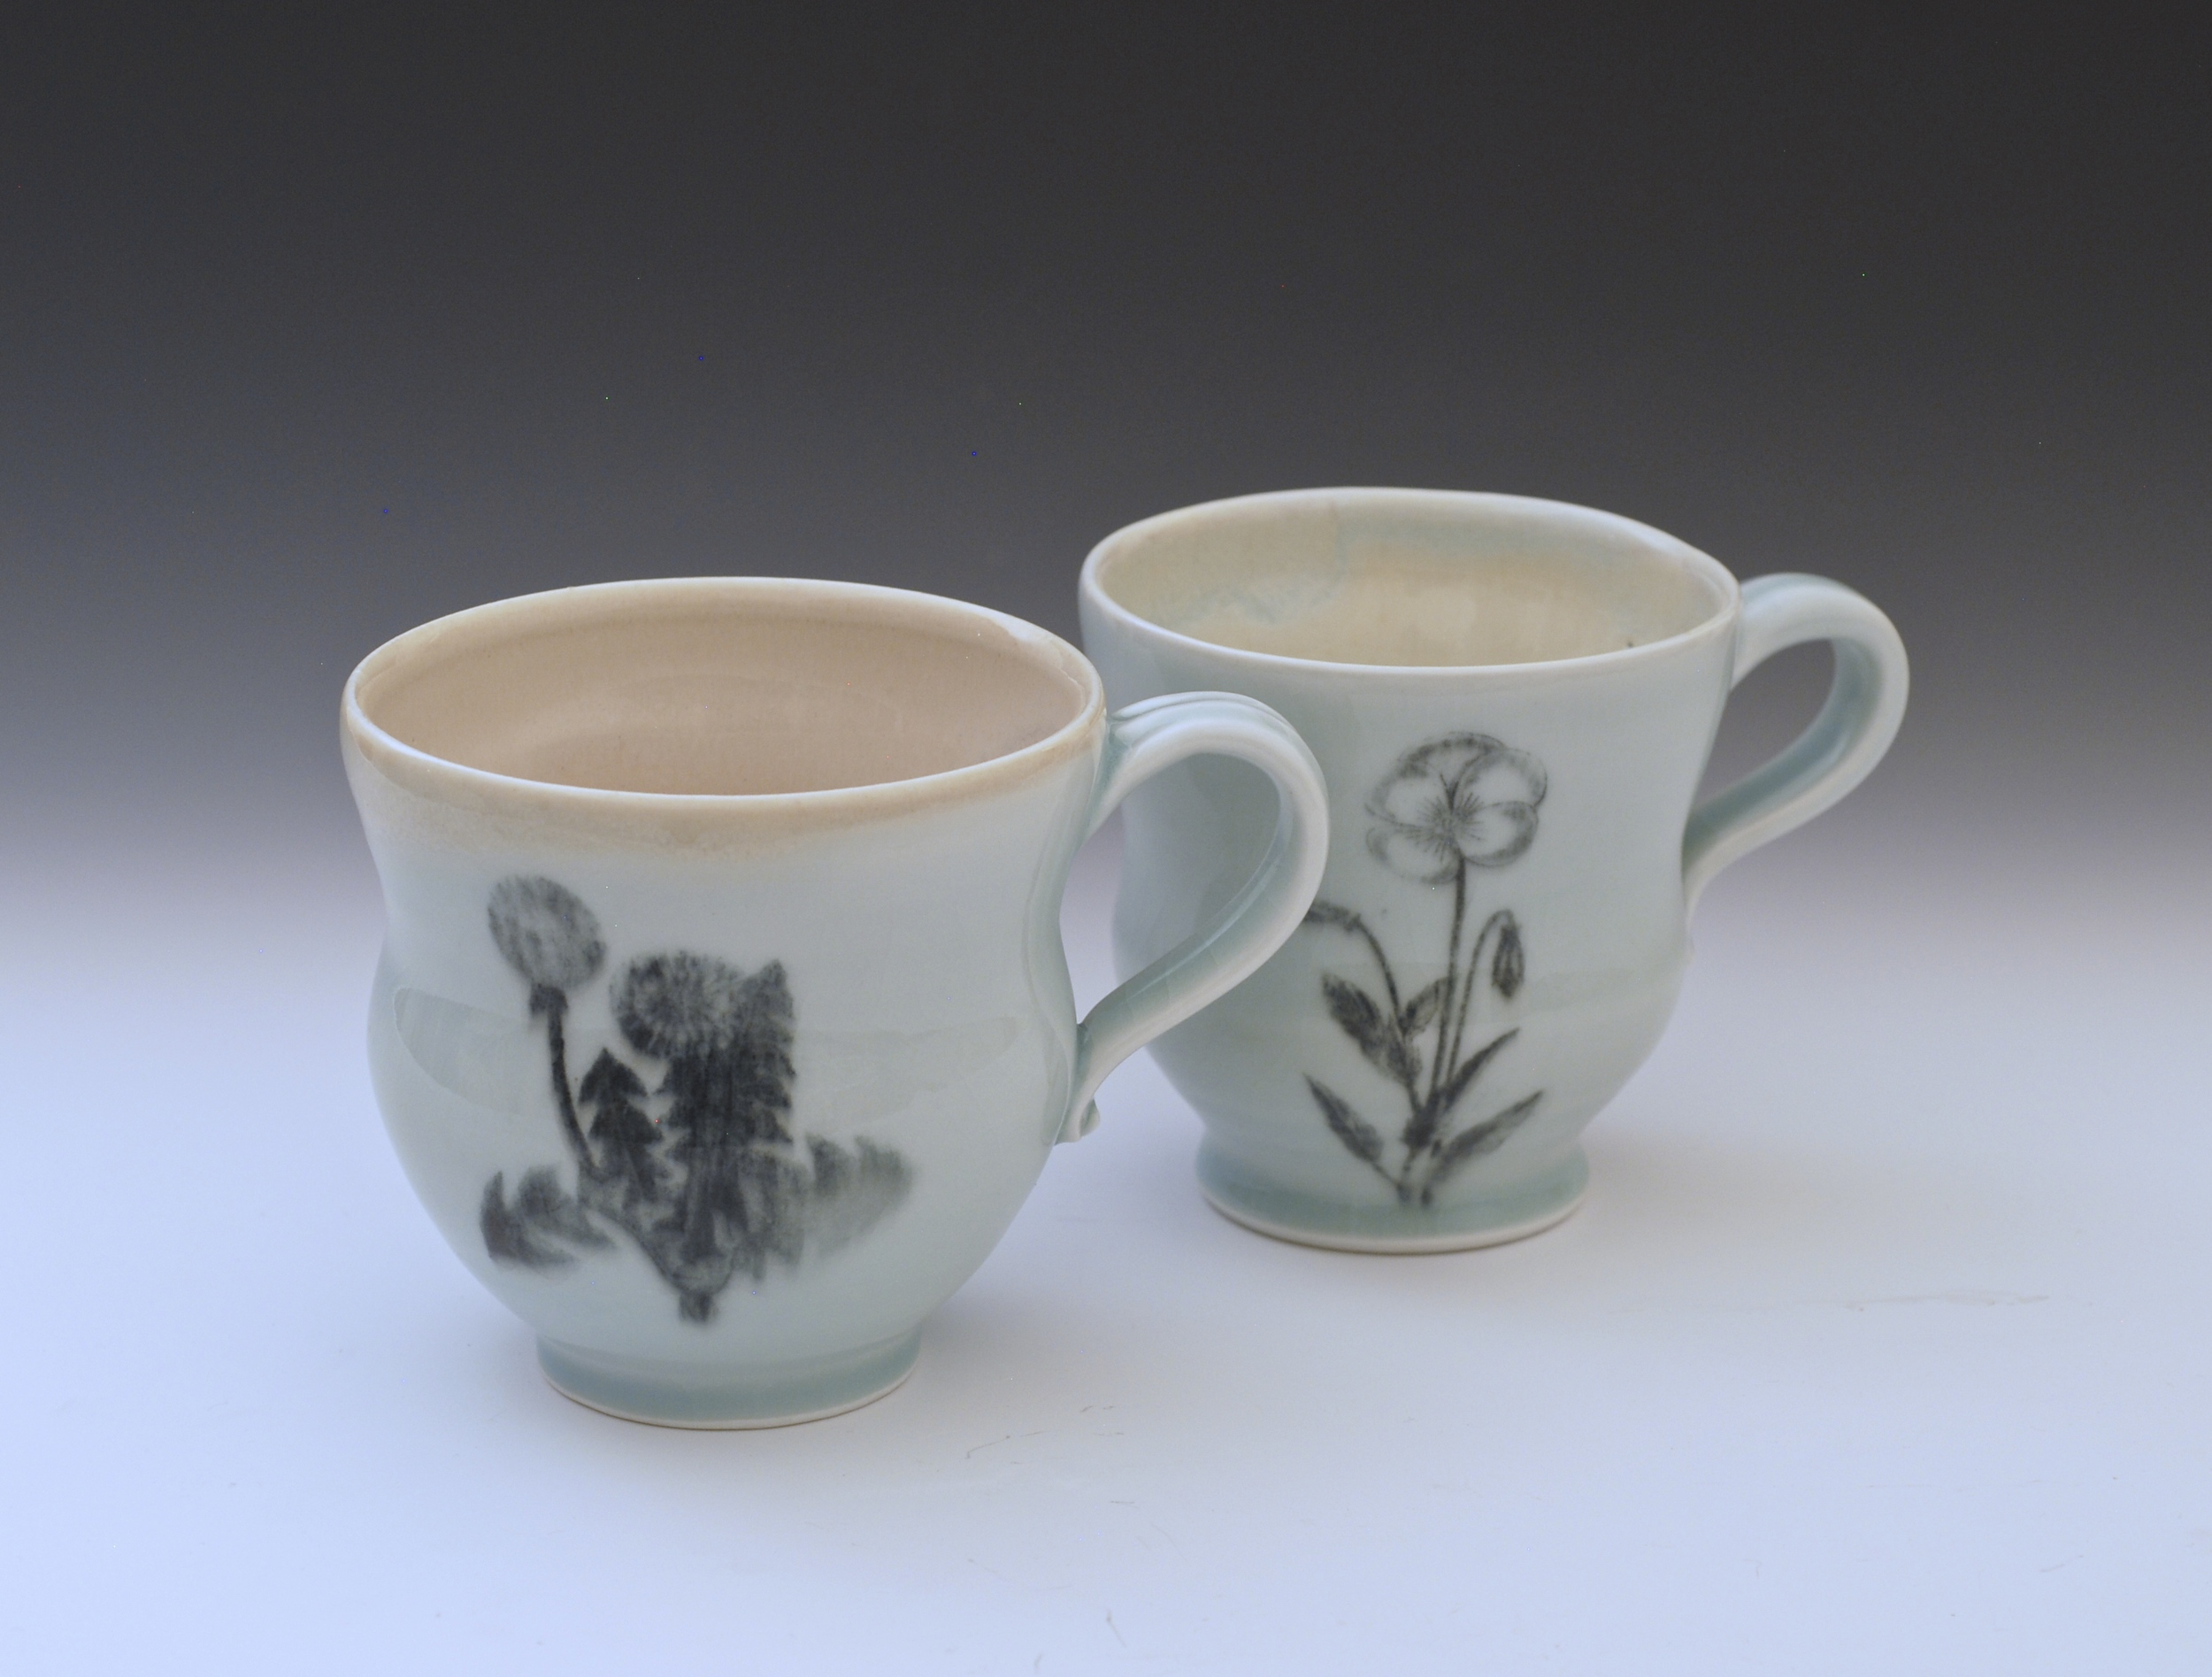 WILDFLOWER MUGS (FRONT)